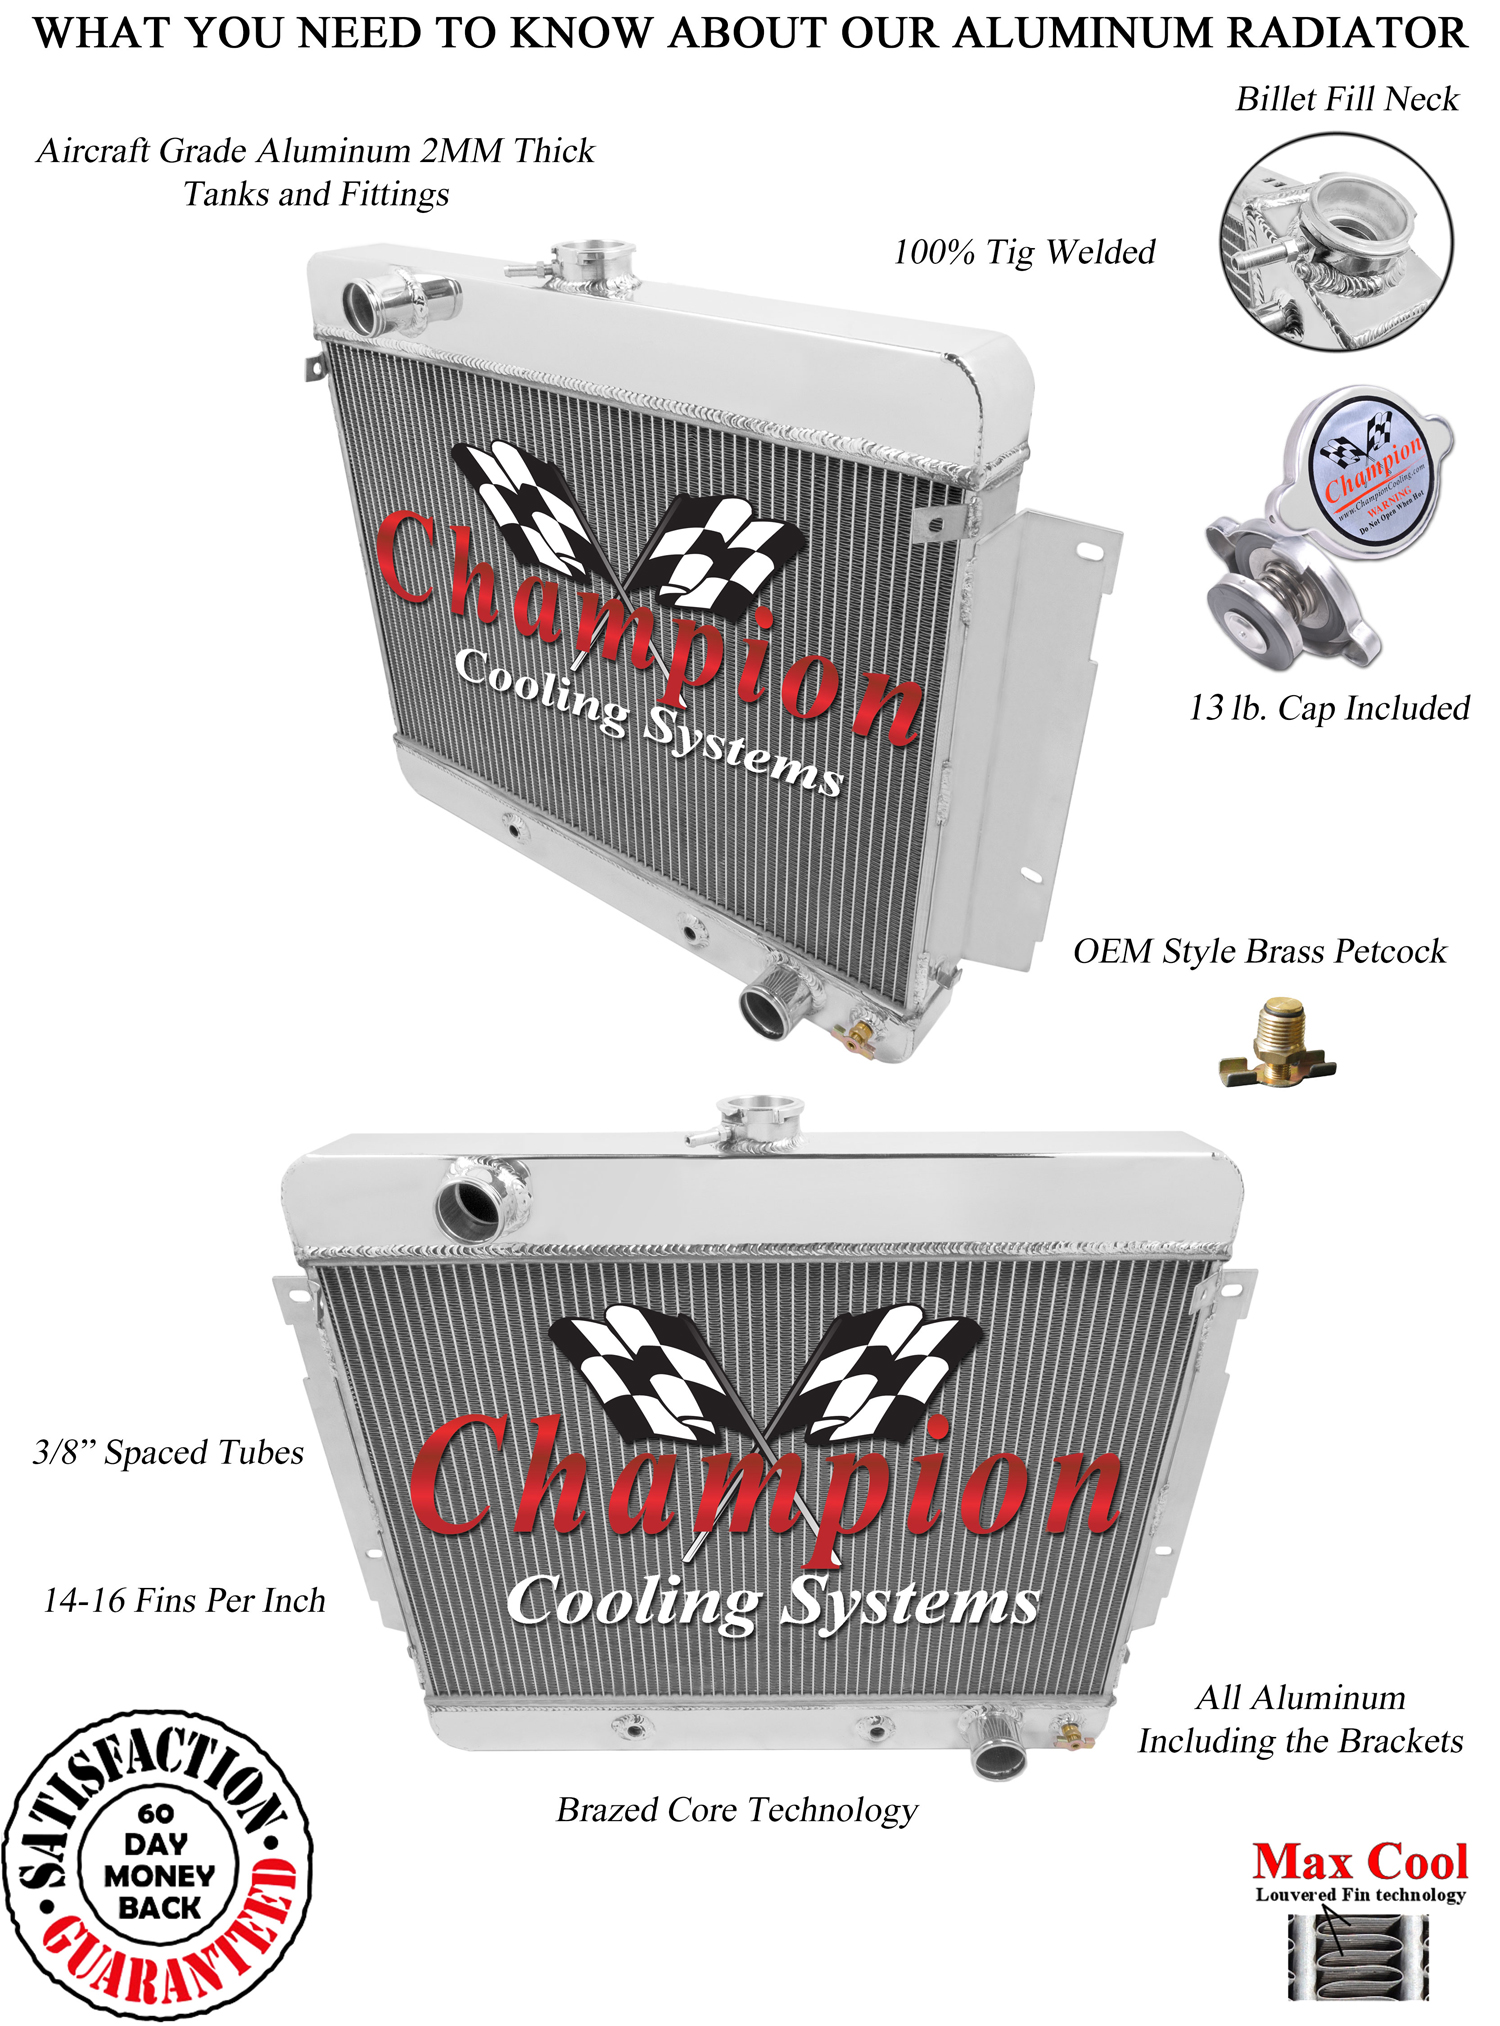 https://www.championcooling.com/photos/Photos%20White/Without%20Fans/345/1969%201970%20Impala%20Radiator.jpg